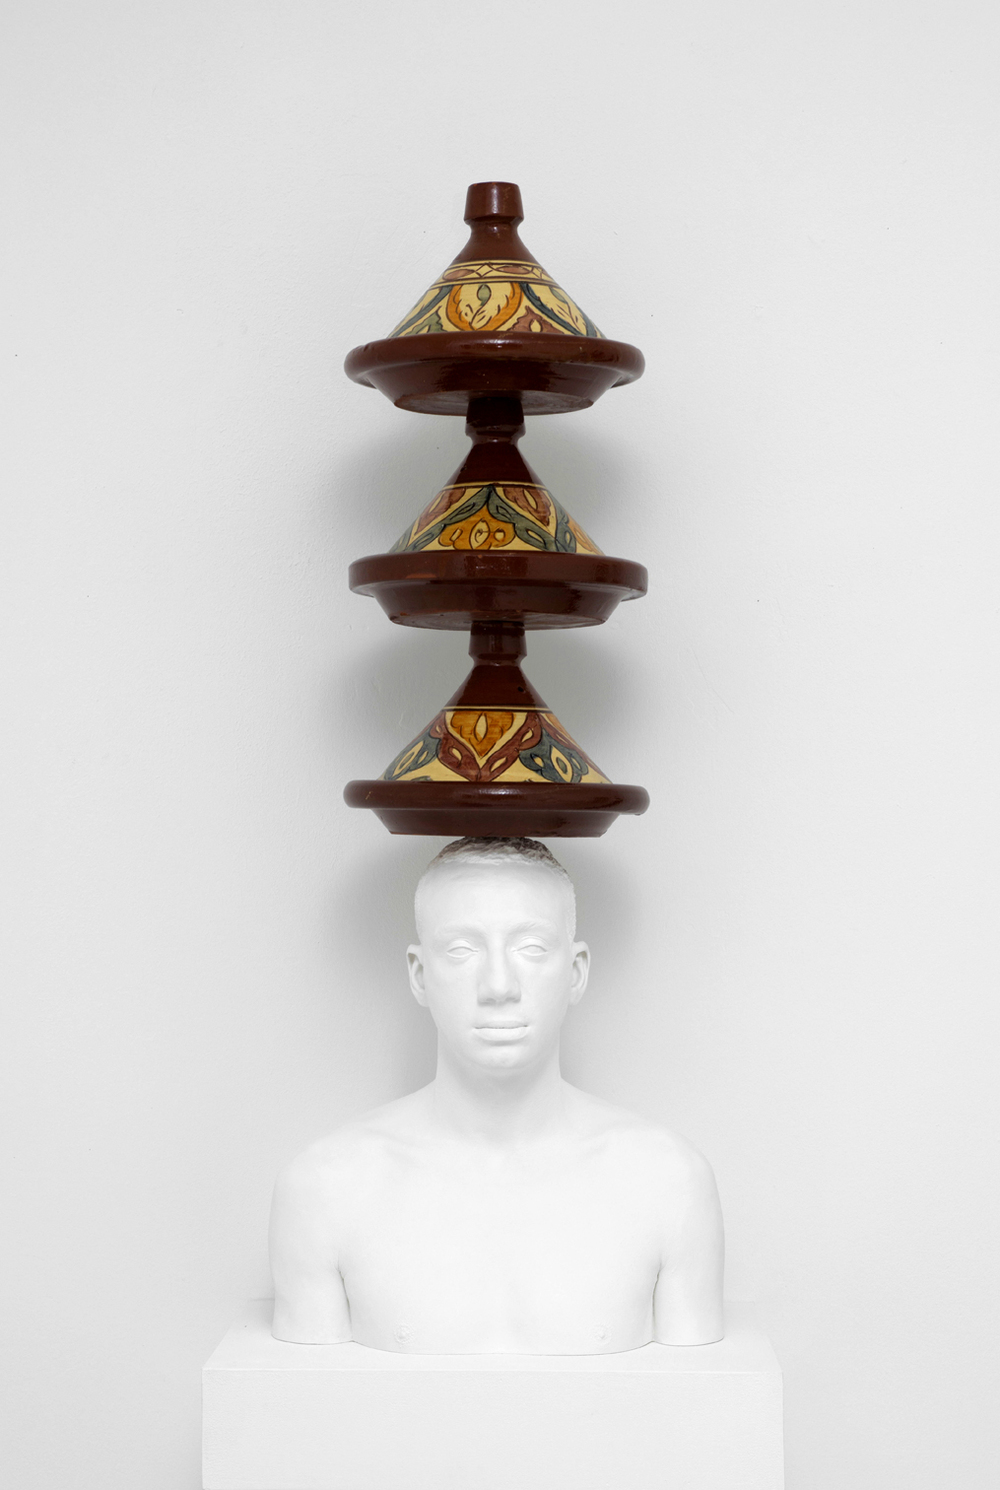 Mehdi-Georges Lahlou, Equilibre aux tajines, 2012 - Courtesy the artist and Rabouan Moussion Paris